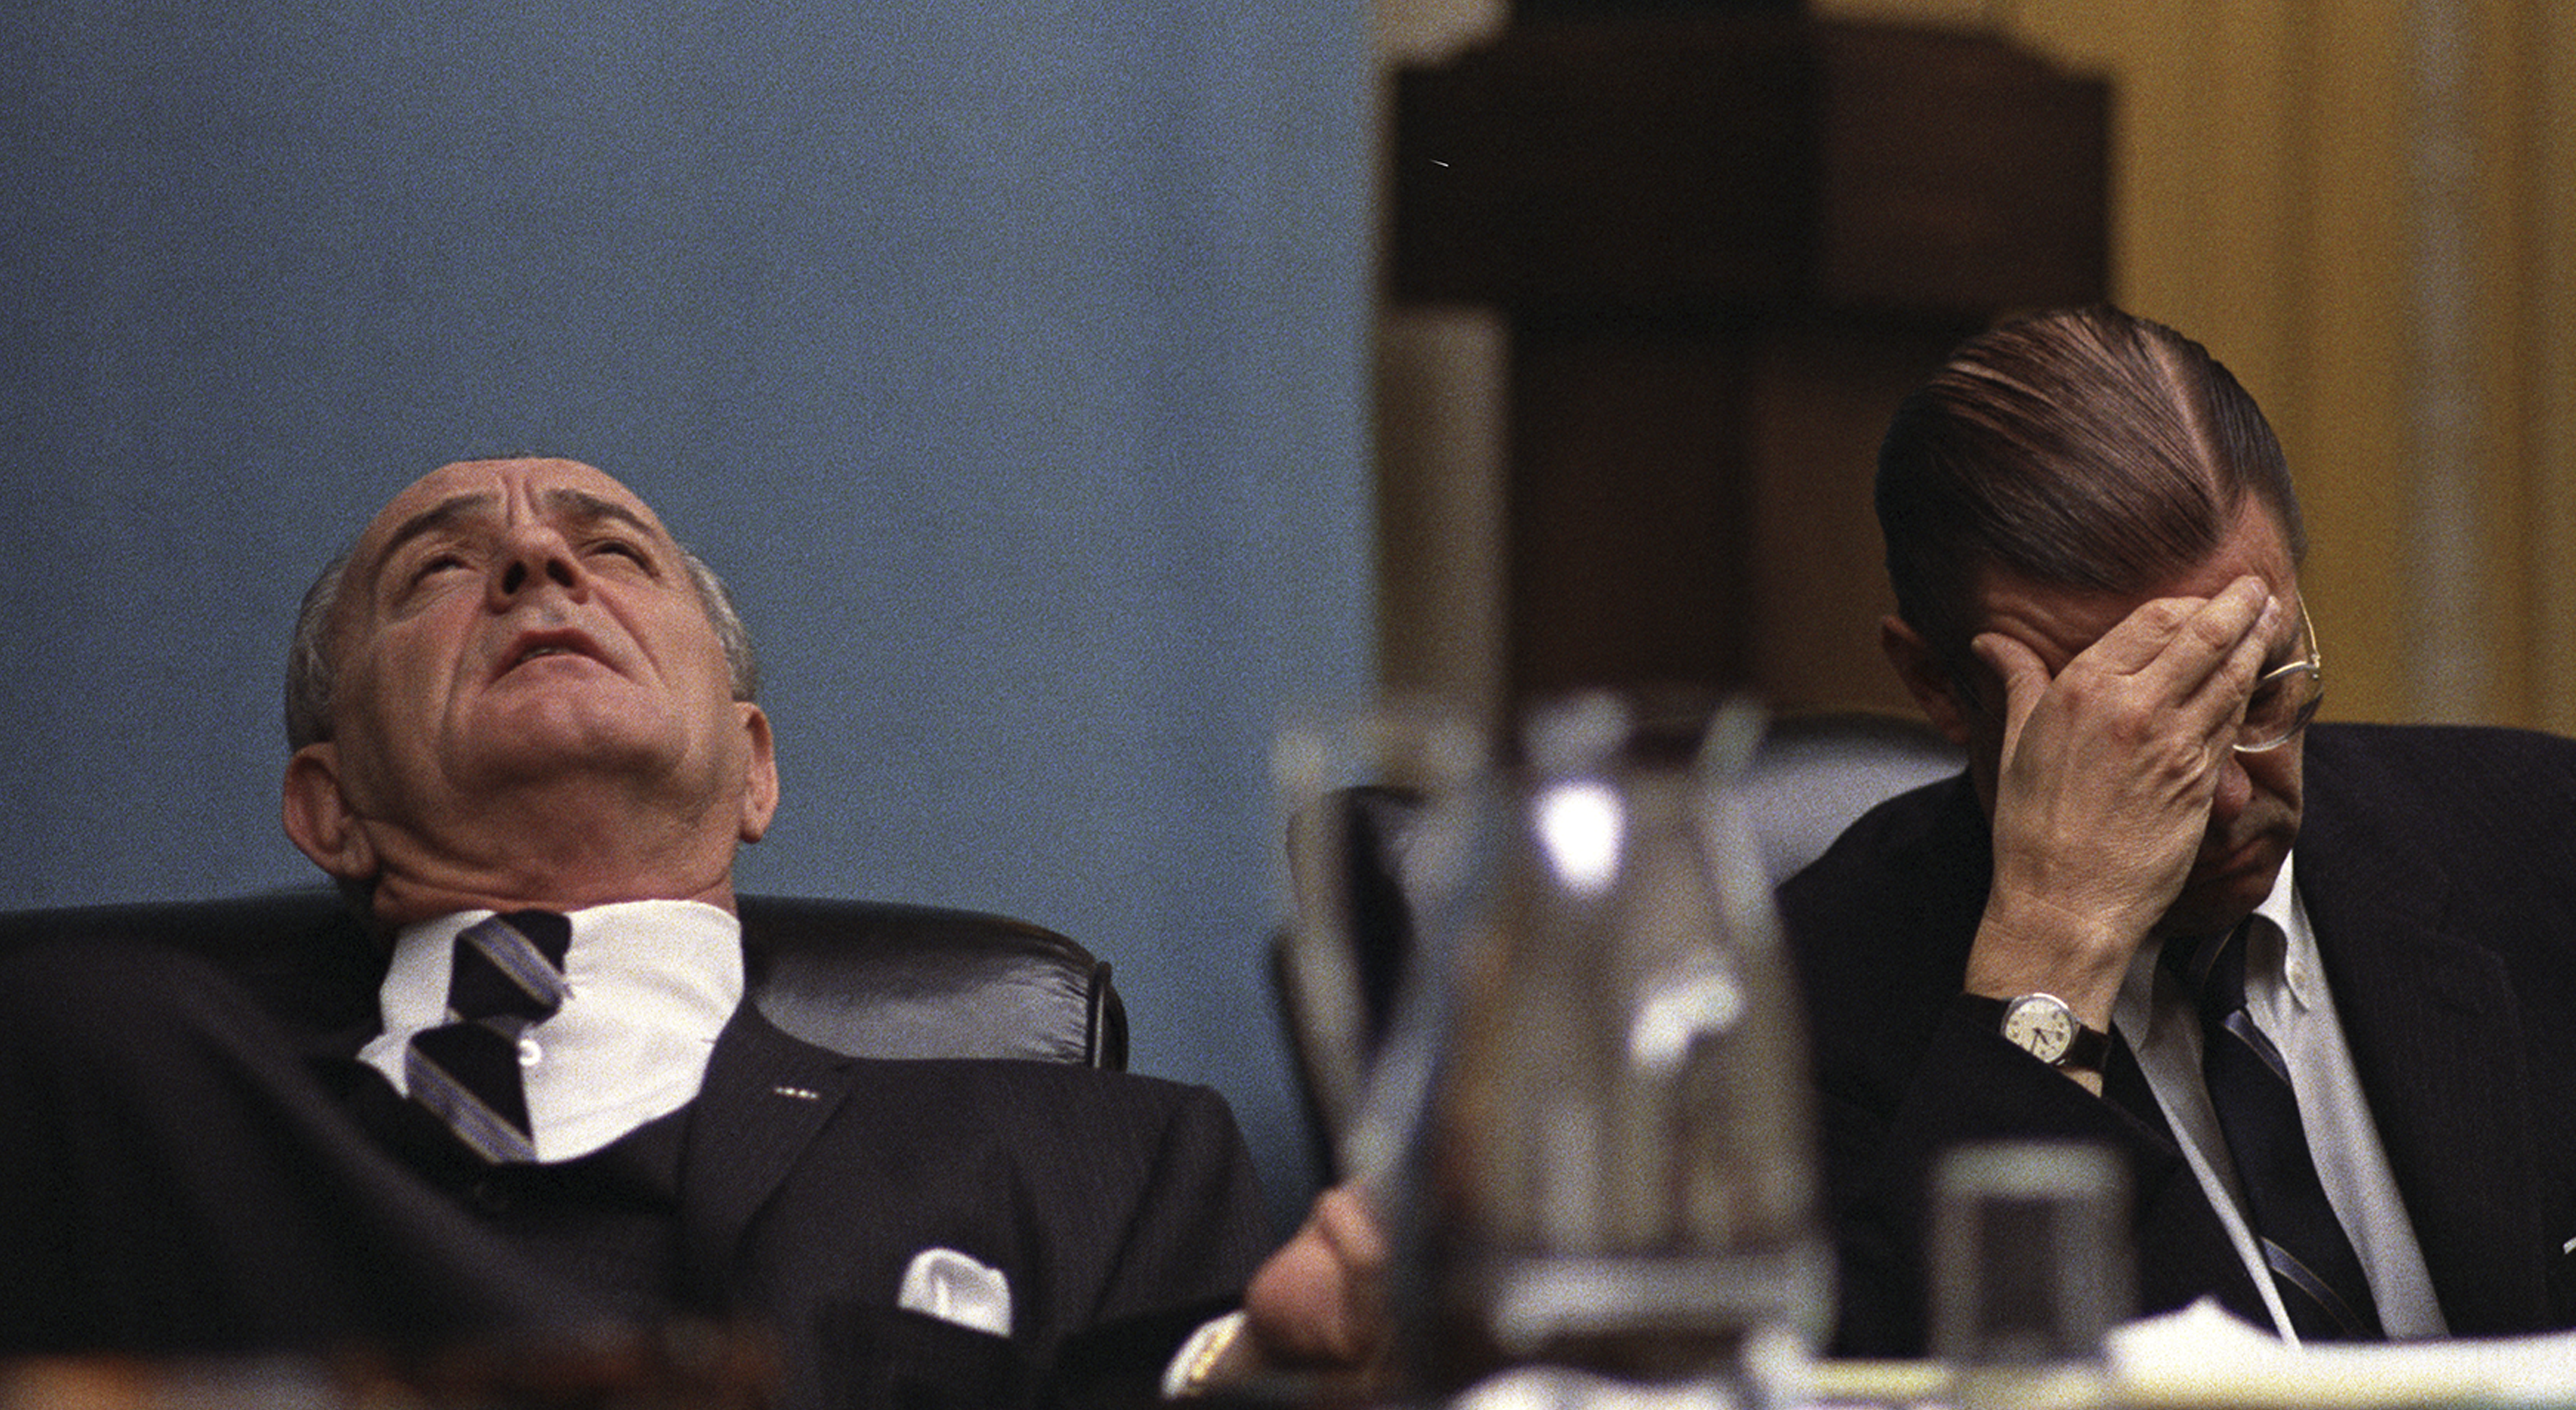 President Johnson and Secretary of Defense Robert McNamara at a cabinet meeting, February 7, 1968. In the wake of the surprisingly fierce and well-coordinated attacks by Communist troops during the Tet Offensive, the Johnson administration began to questi